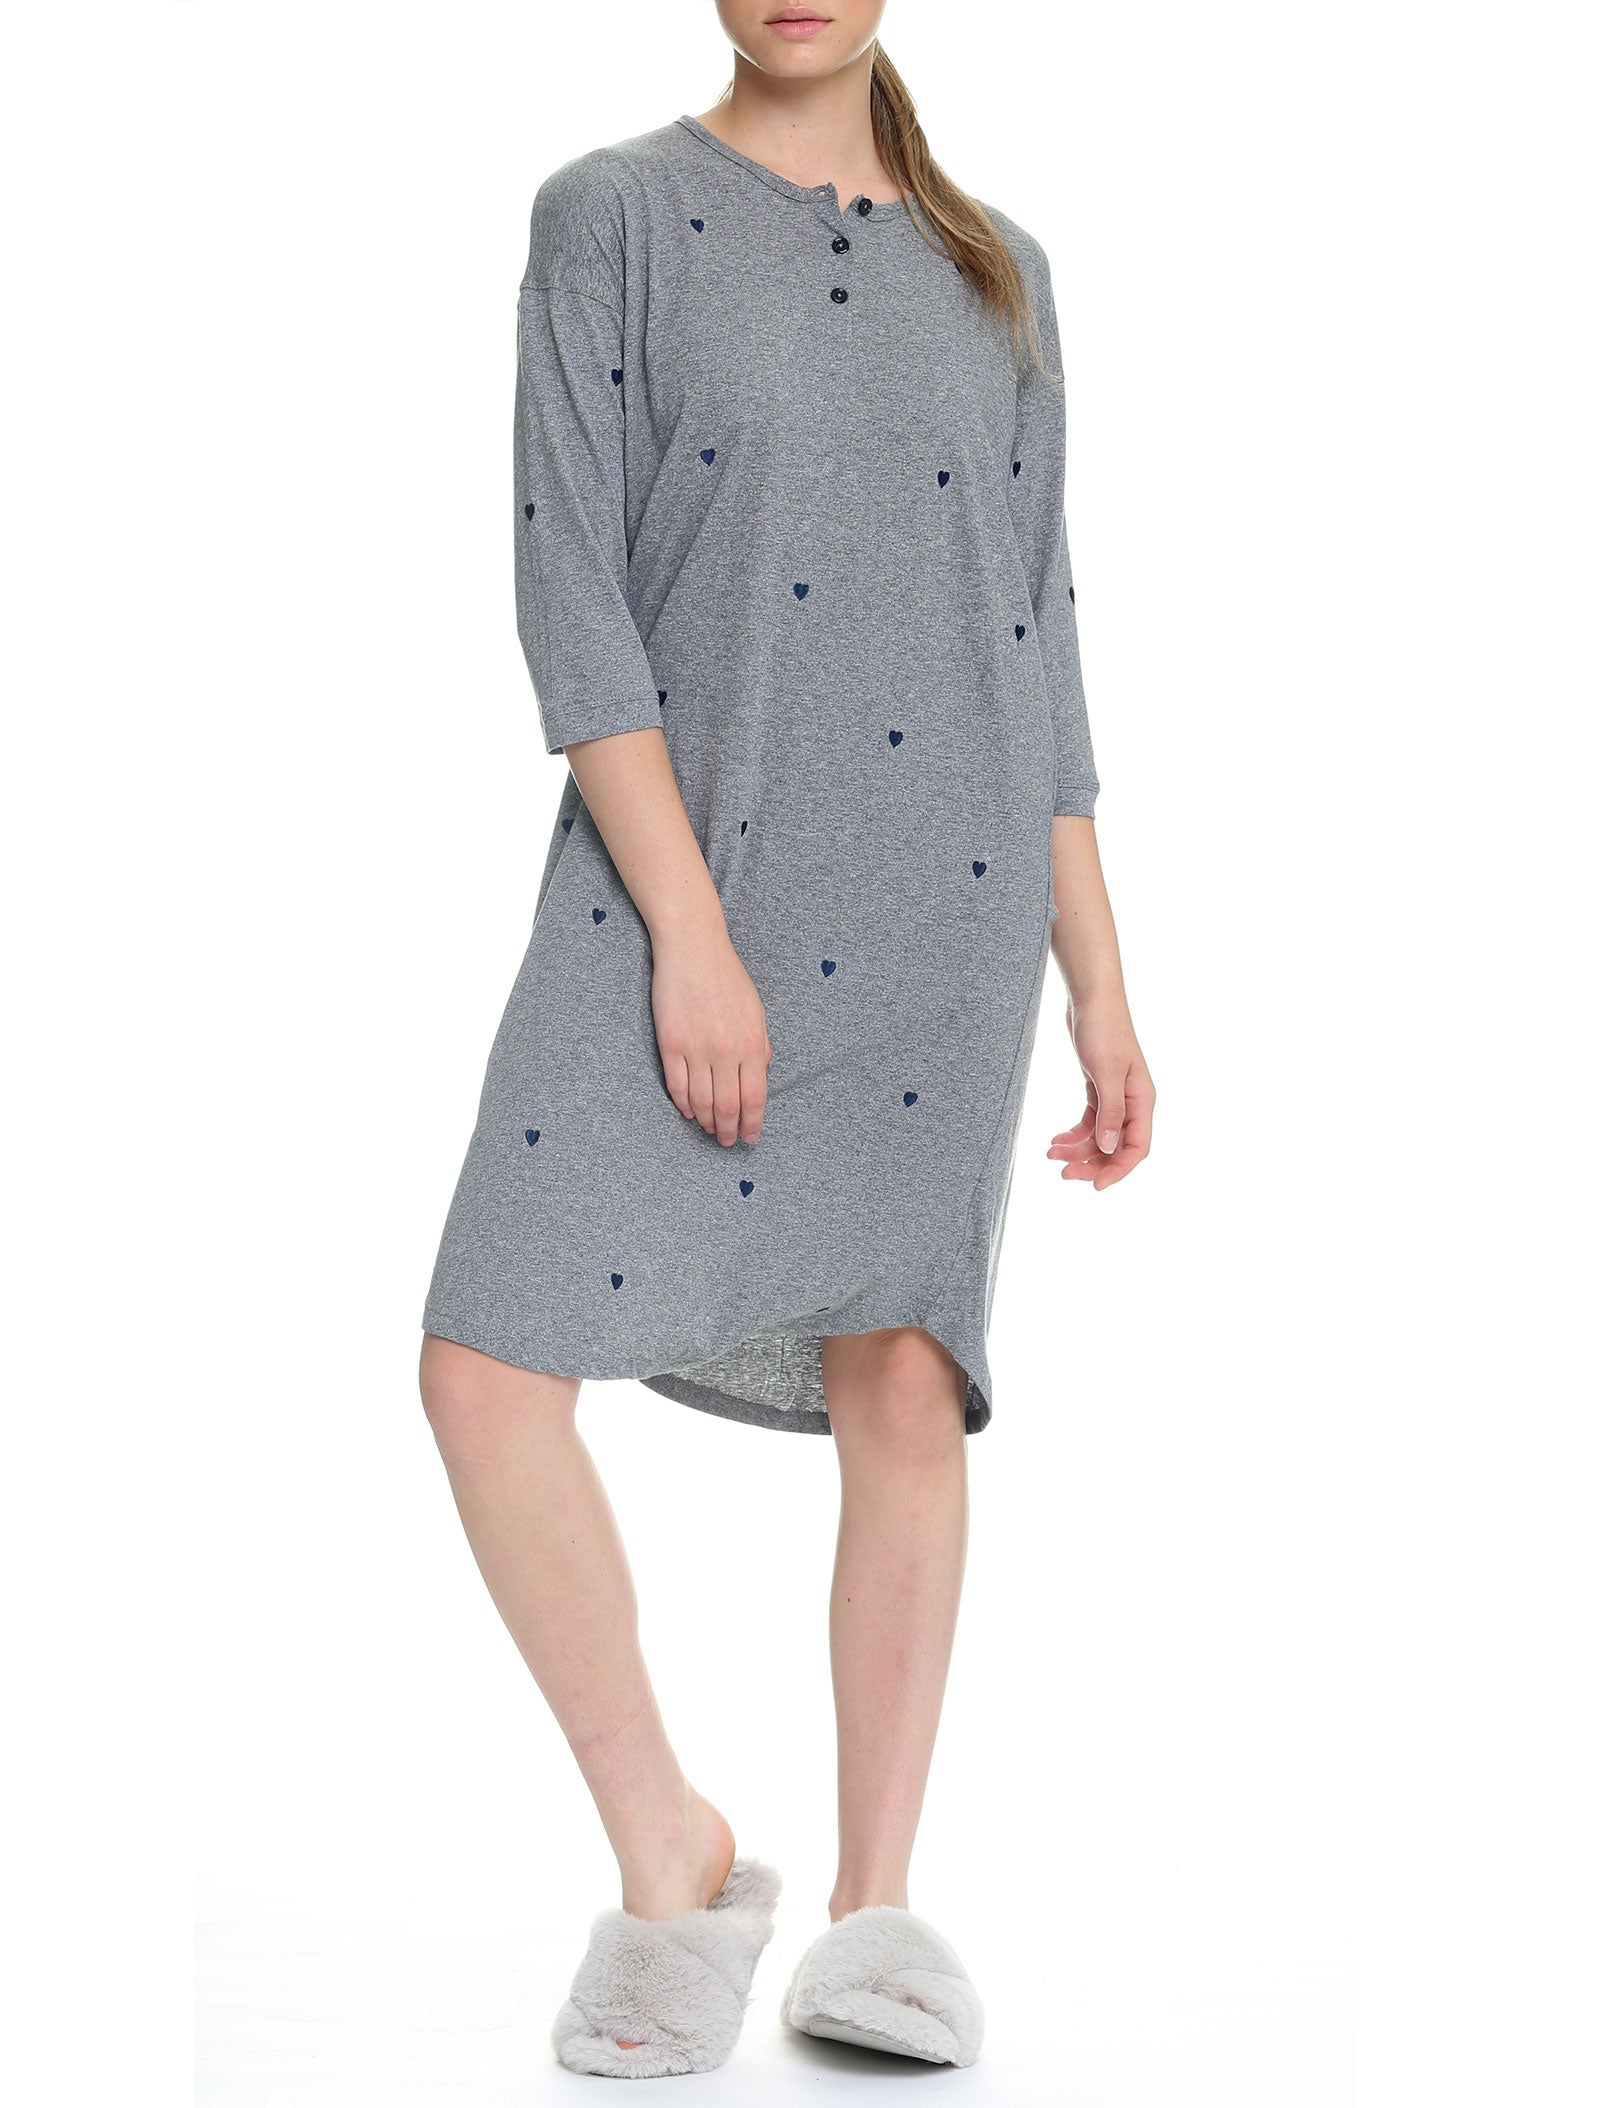 Navy Hearts Organic Cotton Knit Nightgown